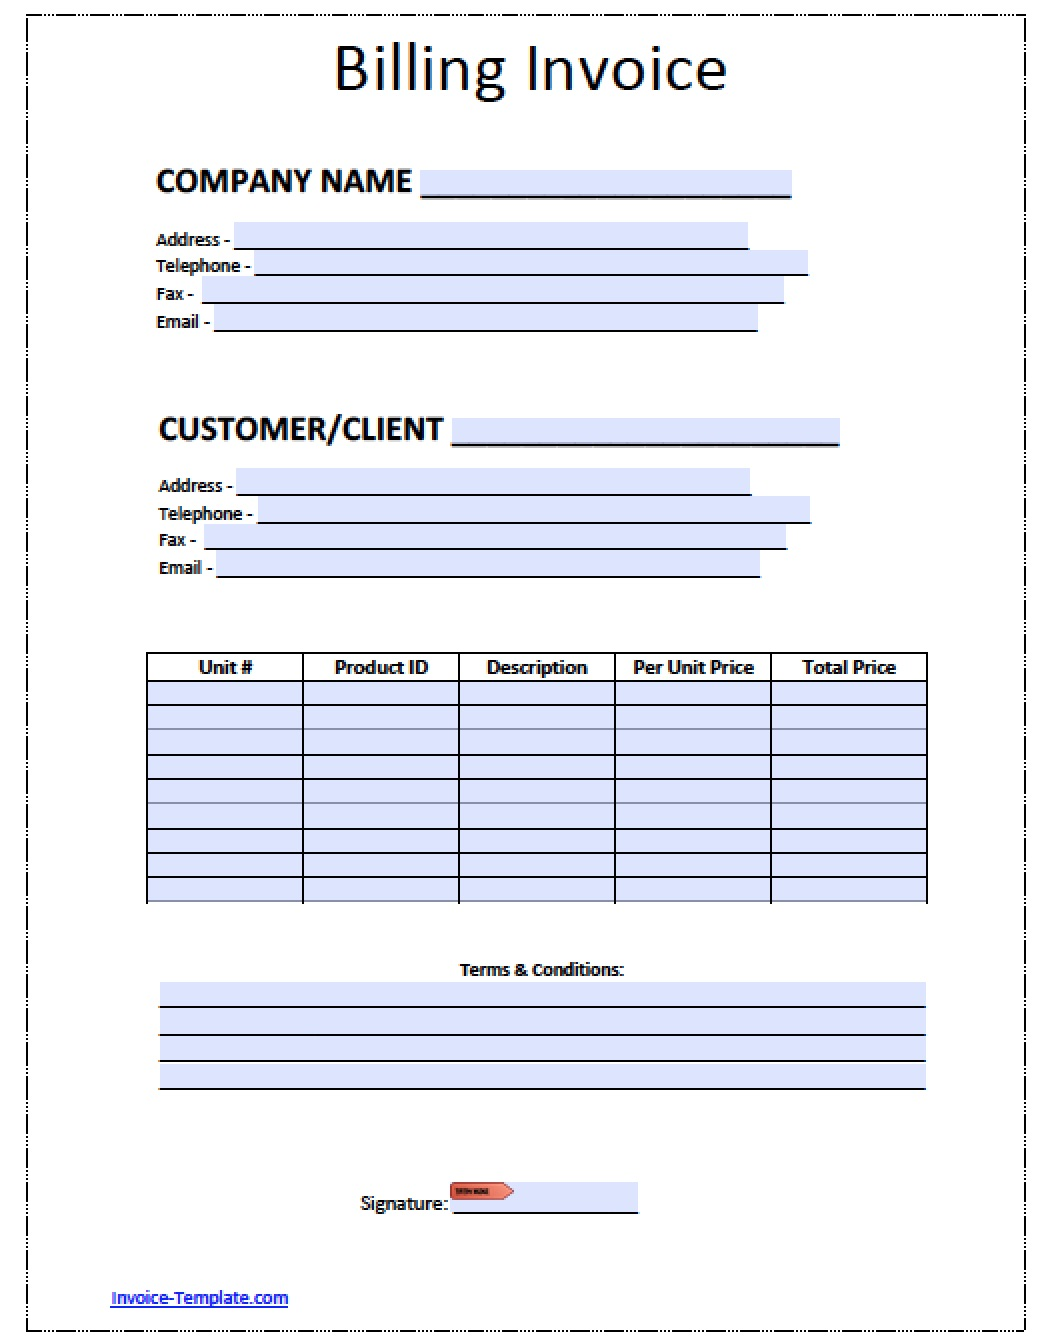 Free Billing Invoice Template Excel PDF Word Doc - It invoice template